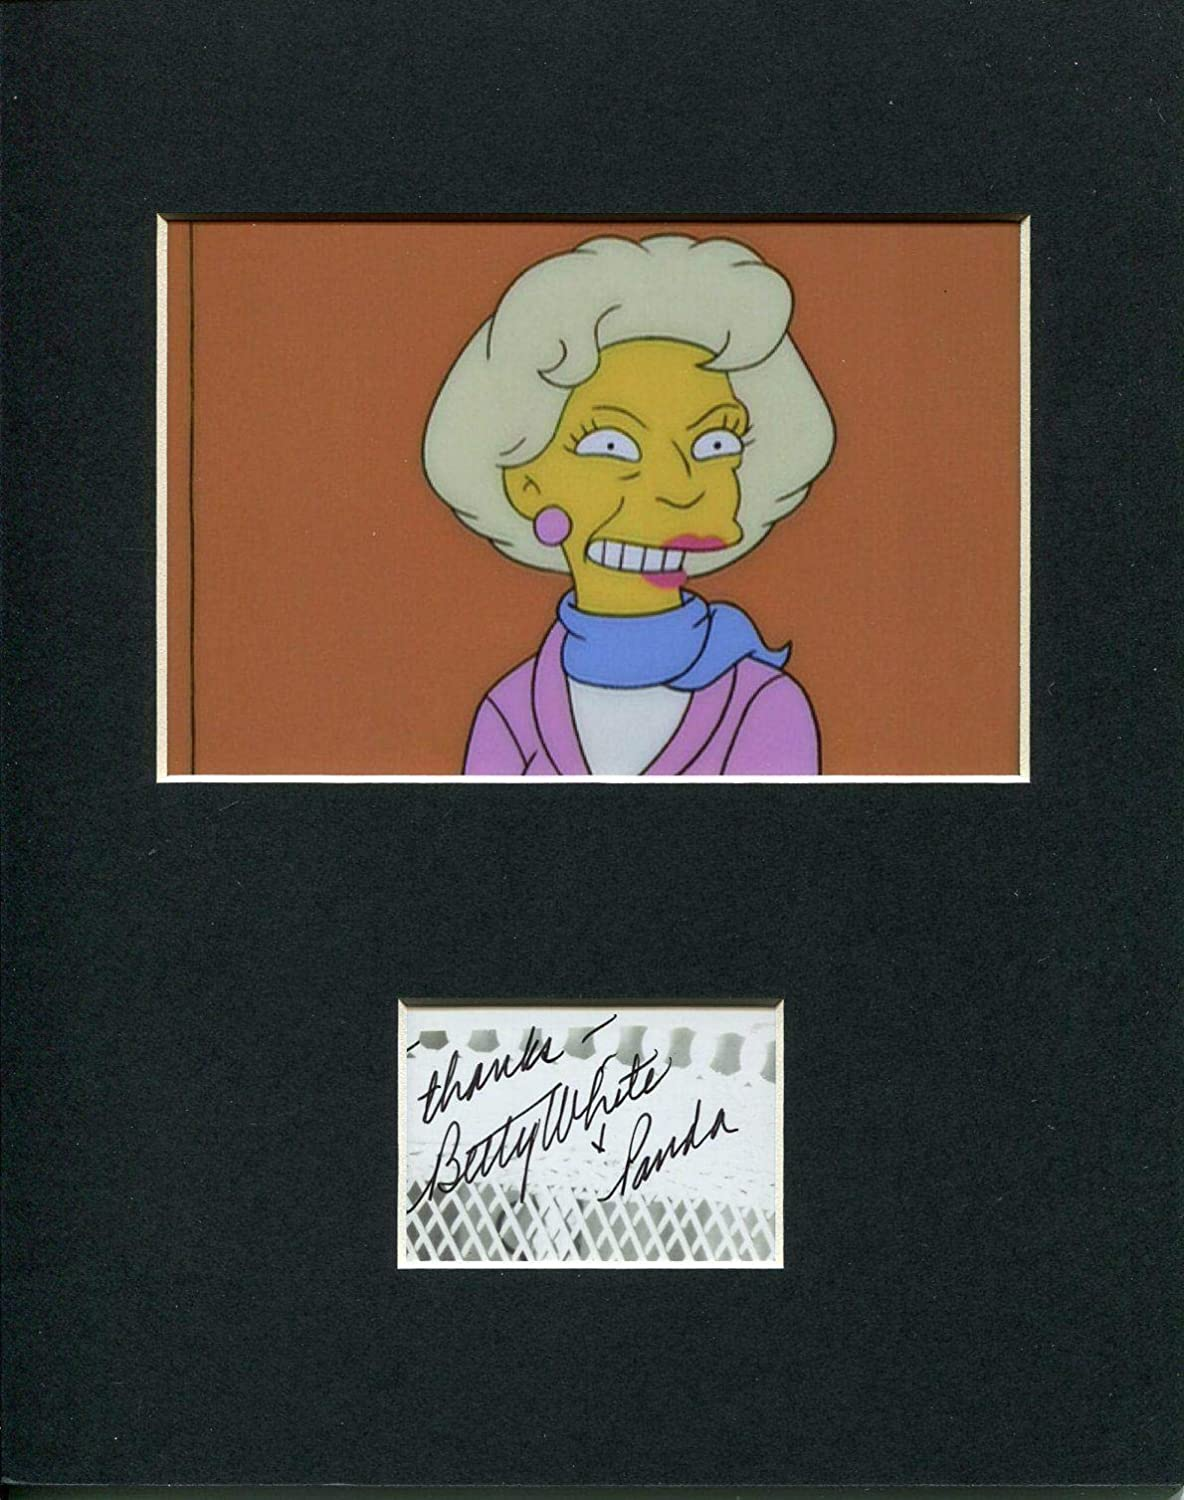 Betty White Golden Girls The Simpsons Rare Signed Autograph Photo Display HollywoodMemorabilia